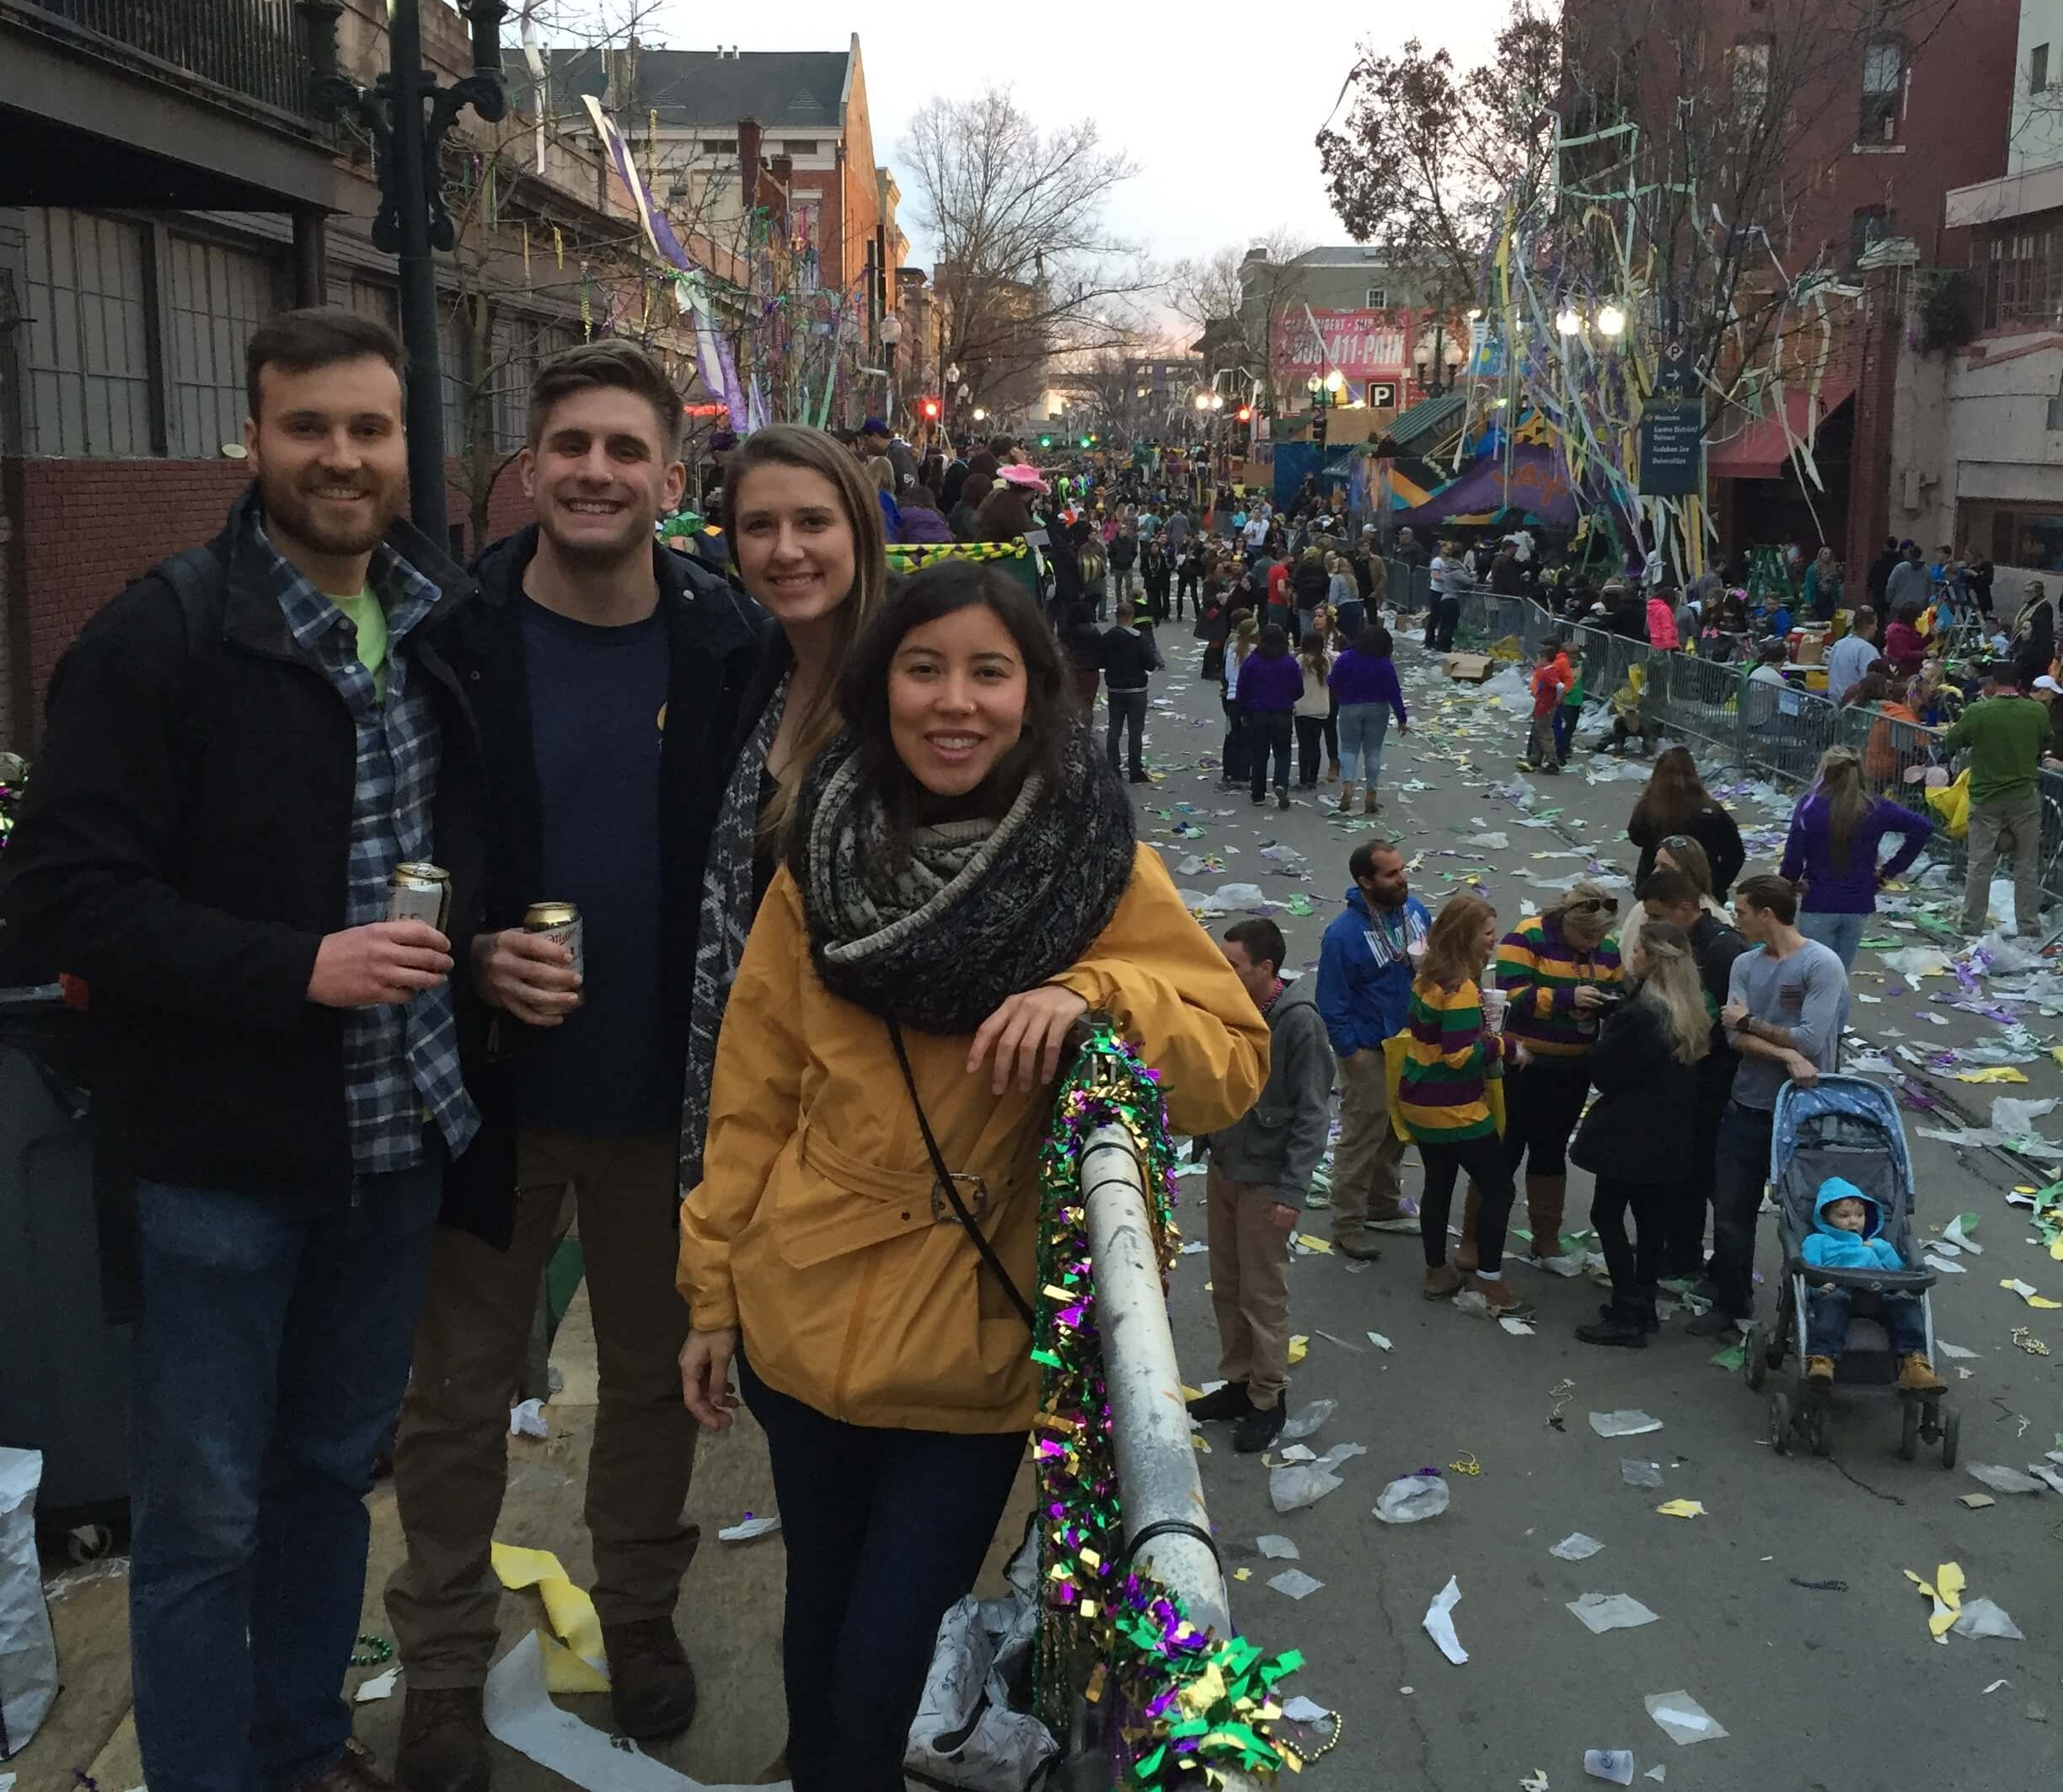 Hanging out on a Mardi Gras parade viewing balcony.